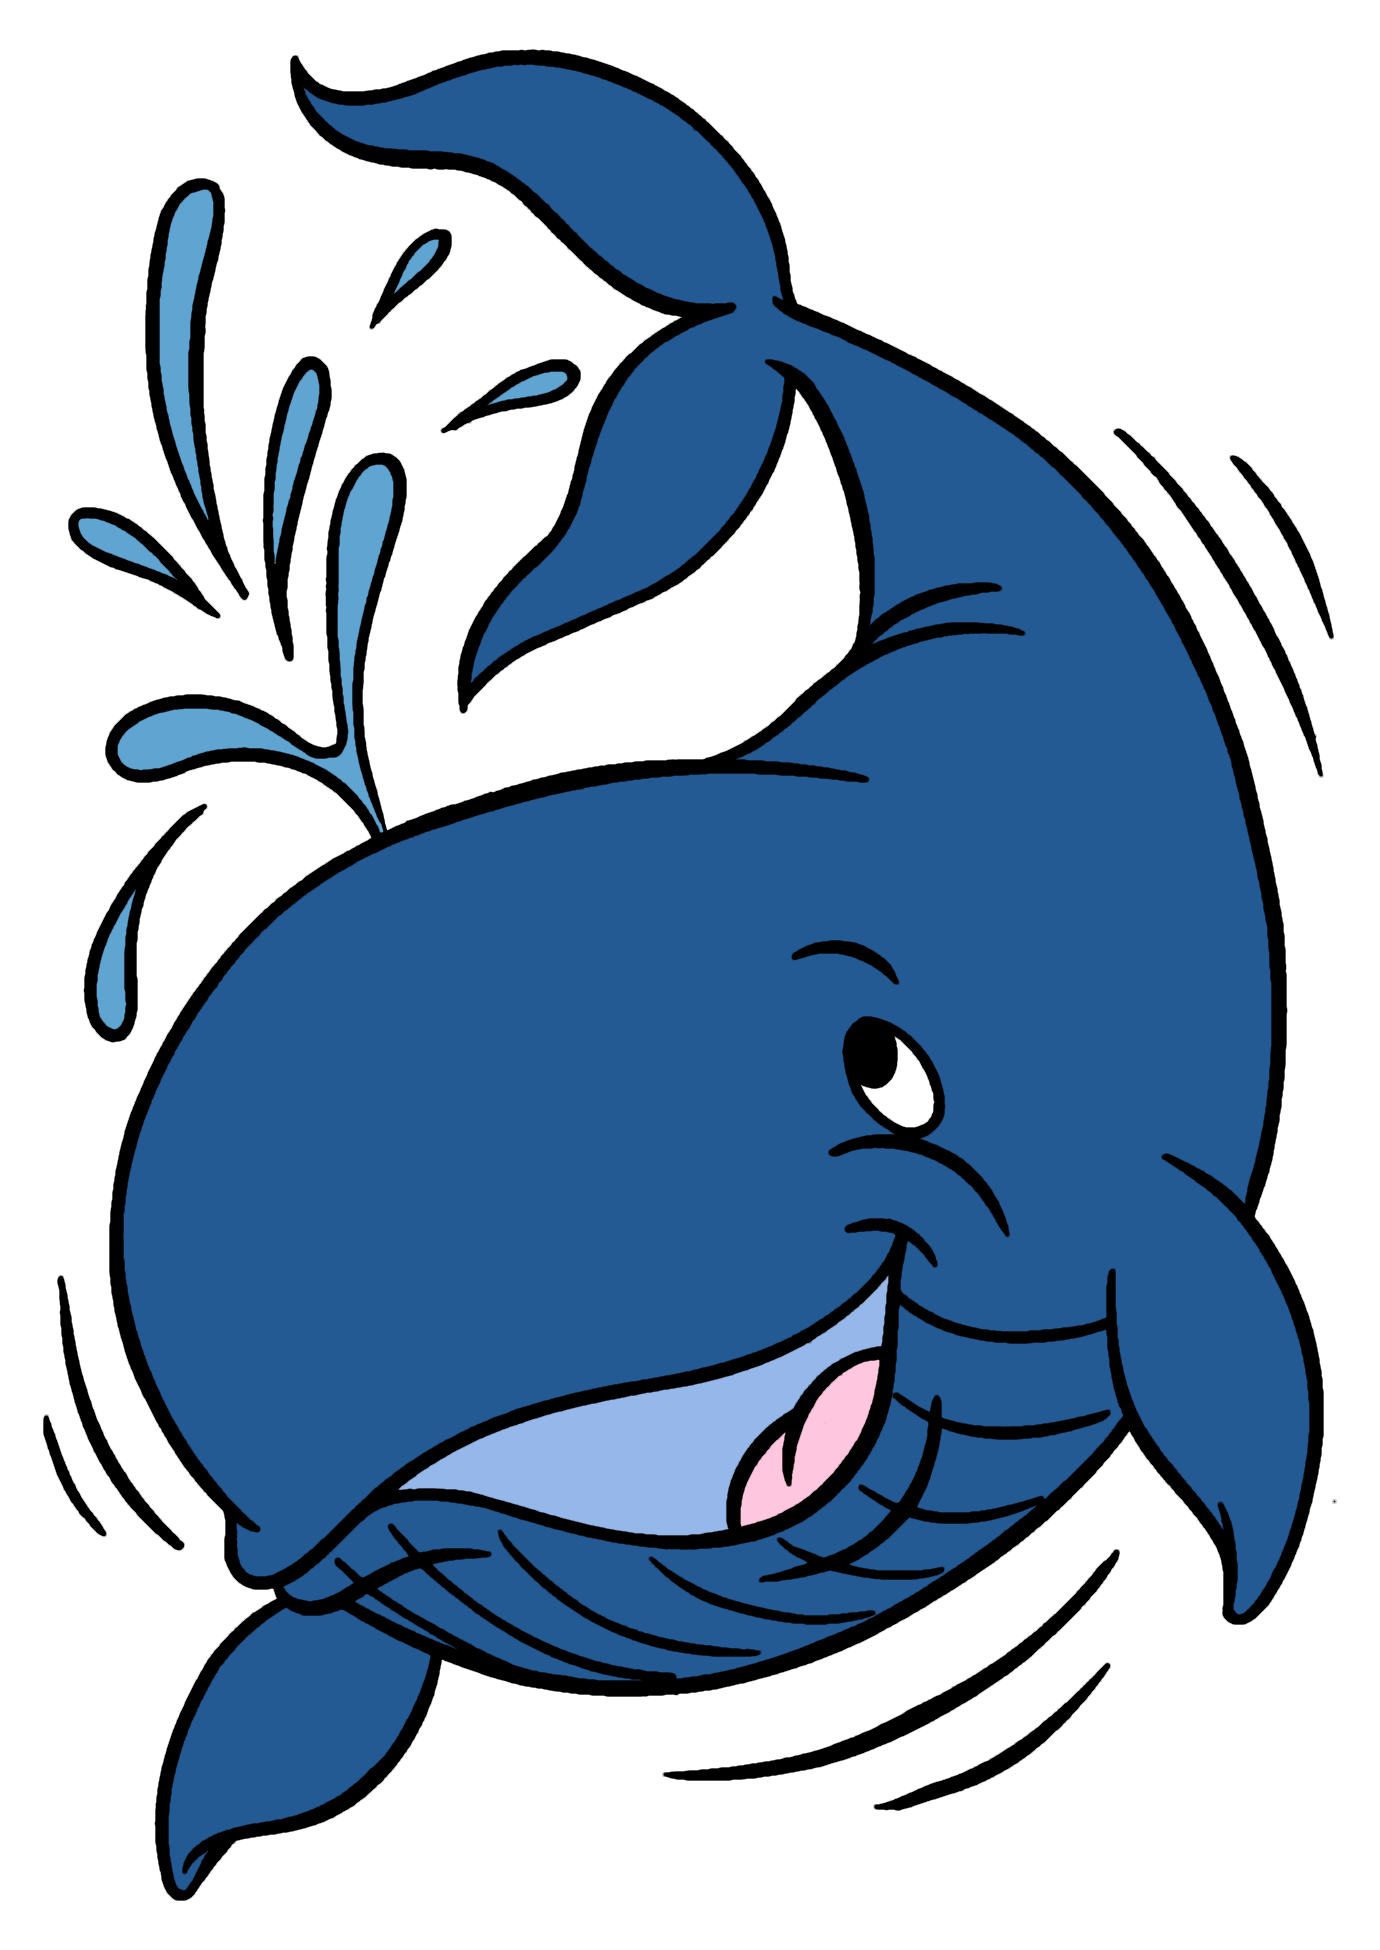 Whale pic clipart png royalty free library Whale clipart | Fishing Cartoons | Clip art, Whale, Vbs crafts png royalty free library